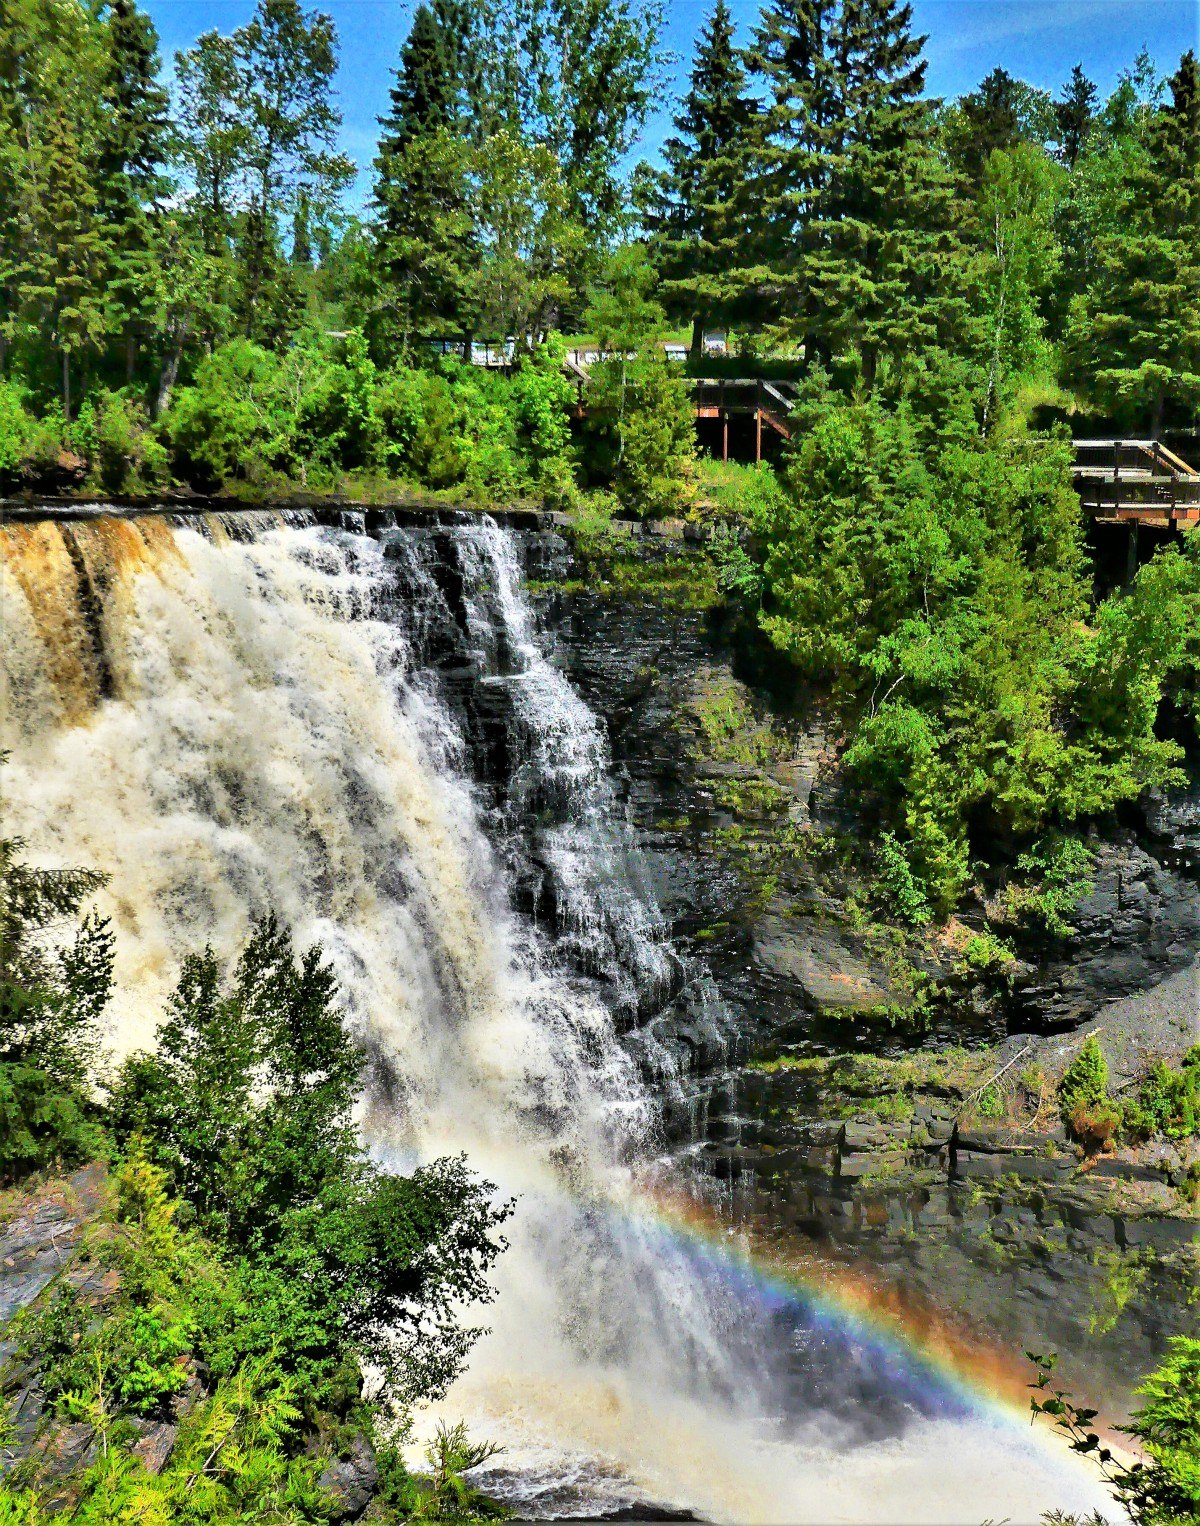 Kakabeka Falls with rainbow